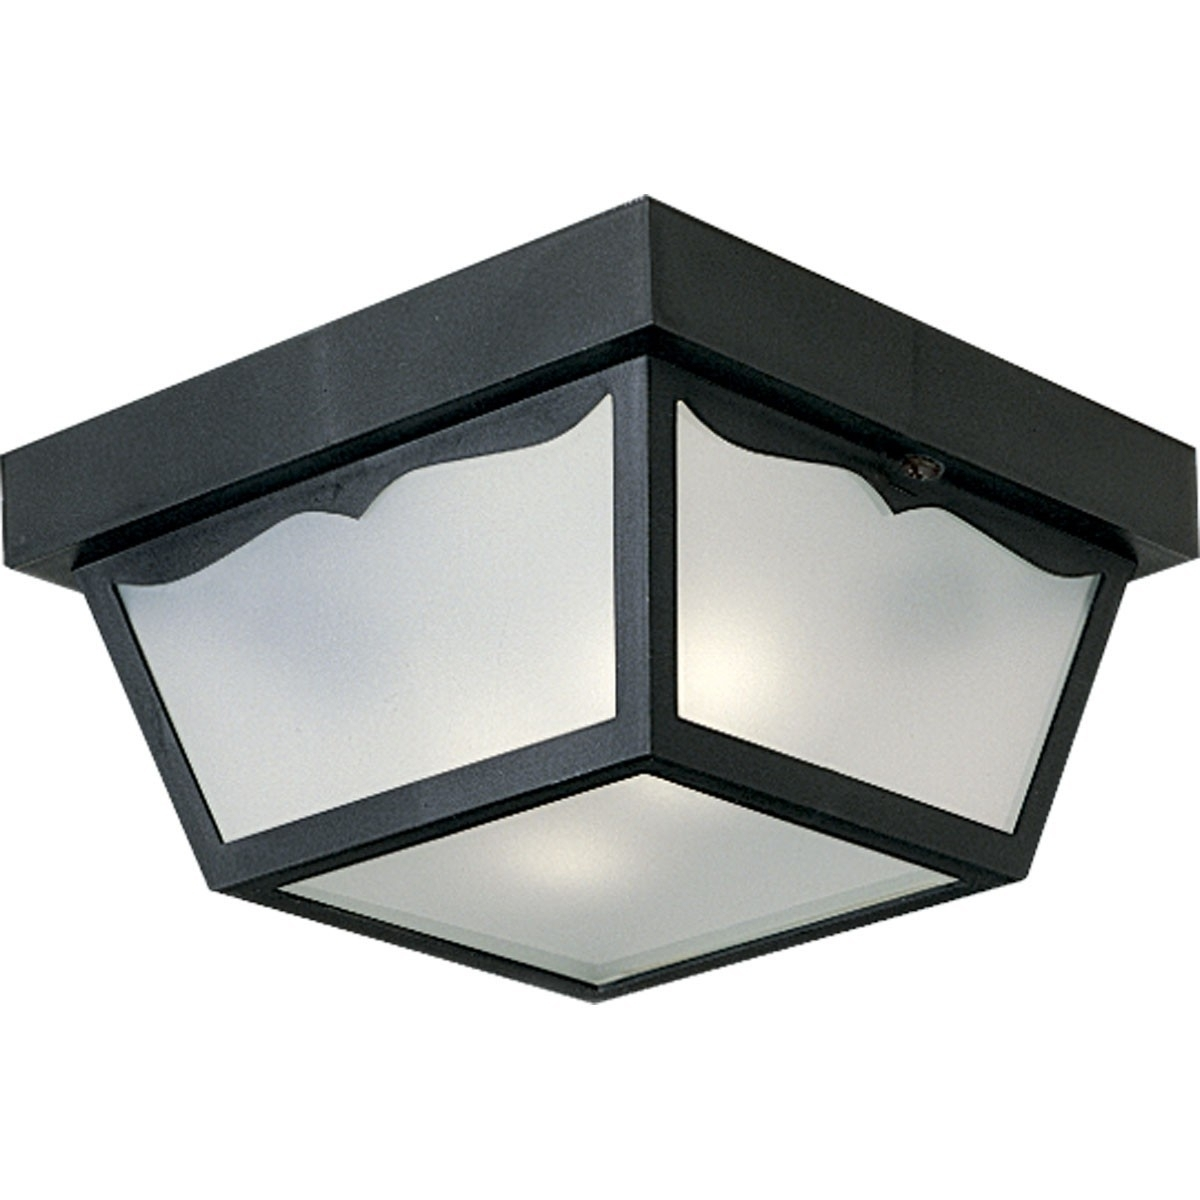 Outdoor Ceiling Mount Motion Sensor Light • Outdoor Lighting Inside Outdoor Ceiling Sensor Lights (View 12 of 15)